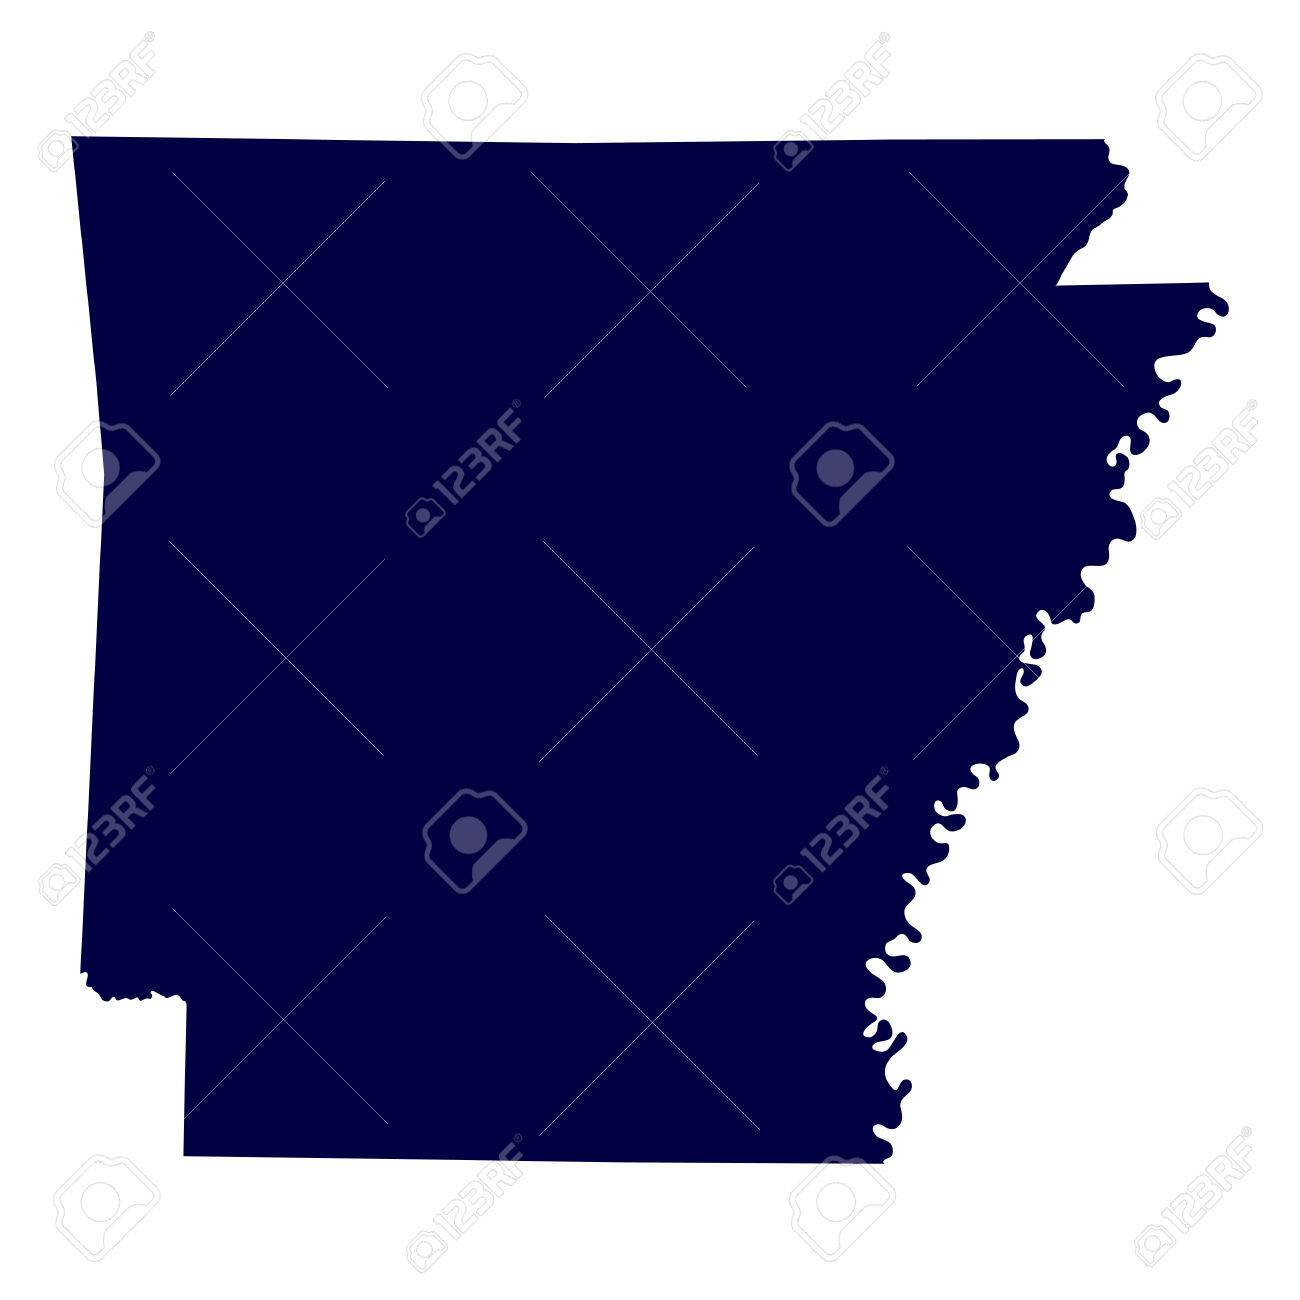 Map Of The U S State Of Arkansas Royalty Free Cliparts Vectors - Arkansas map us